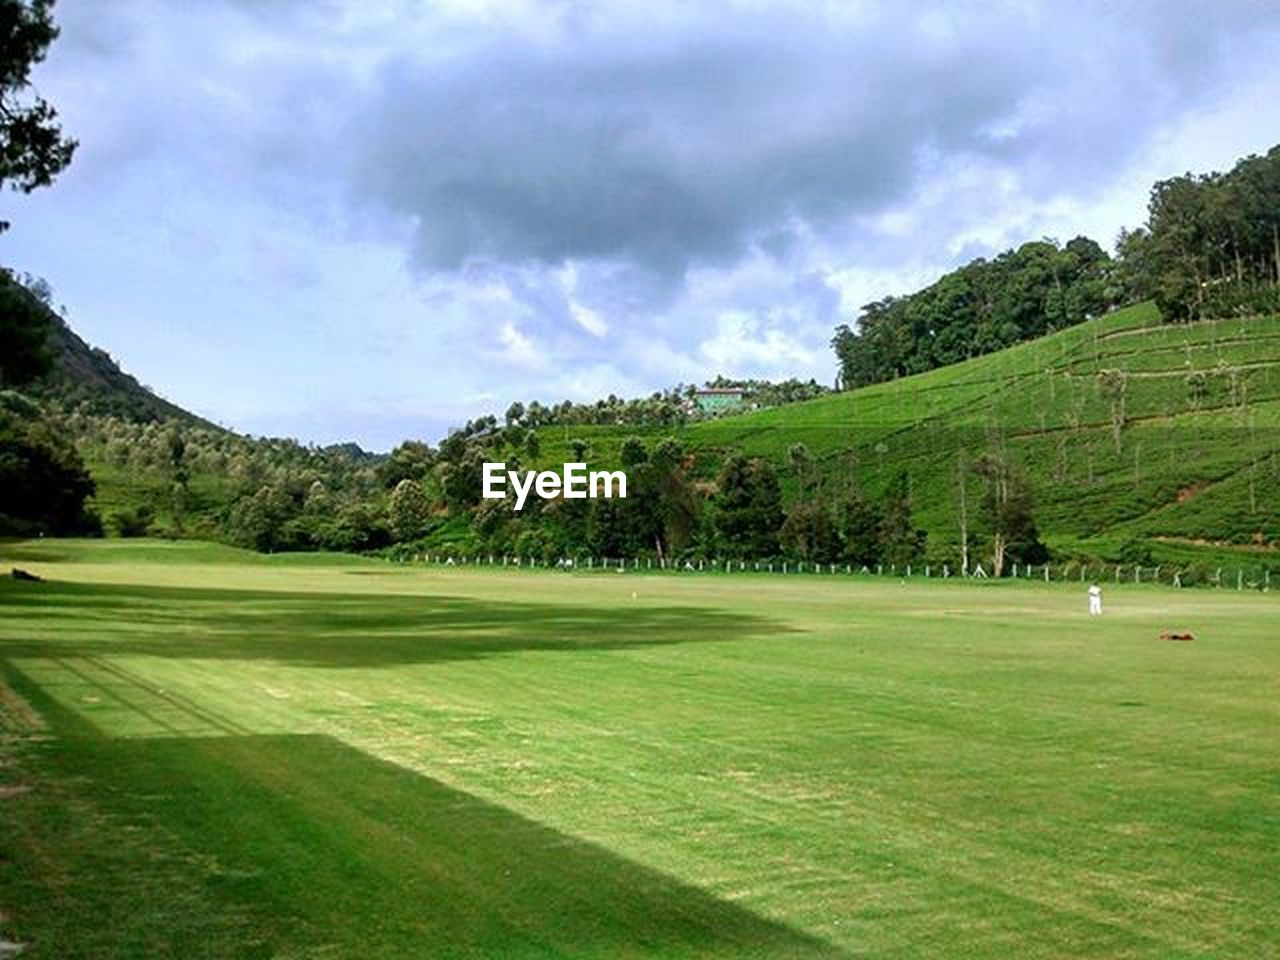 golf course, golf, green - golf course, tree, green color, sport, cloud - sky, scenics, nature, grass, landscape, sand trap, beauty in nature, no people, tourist resort, mountain, vacations, day, travel destinations, sky, outdoors